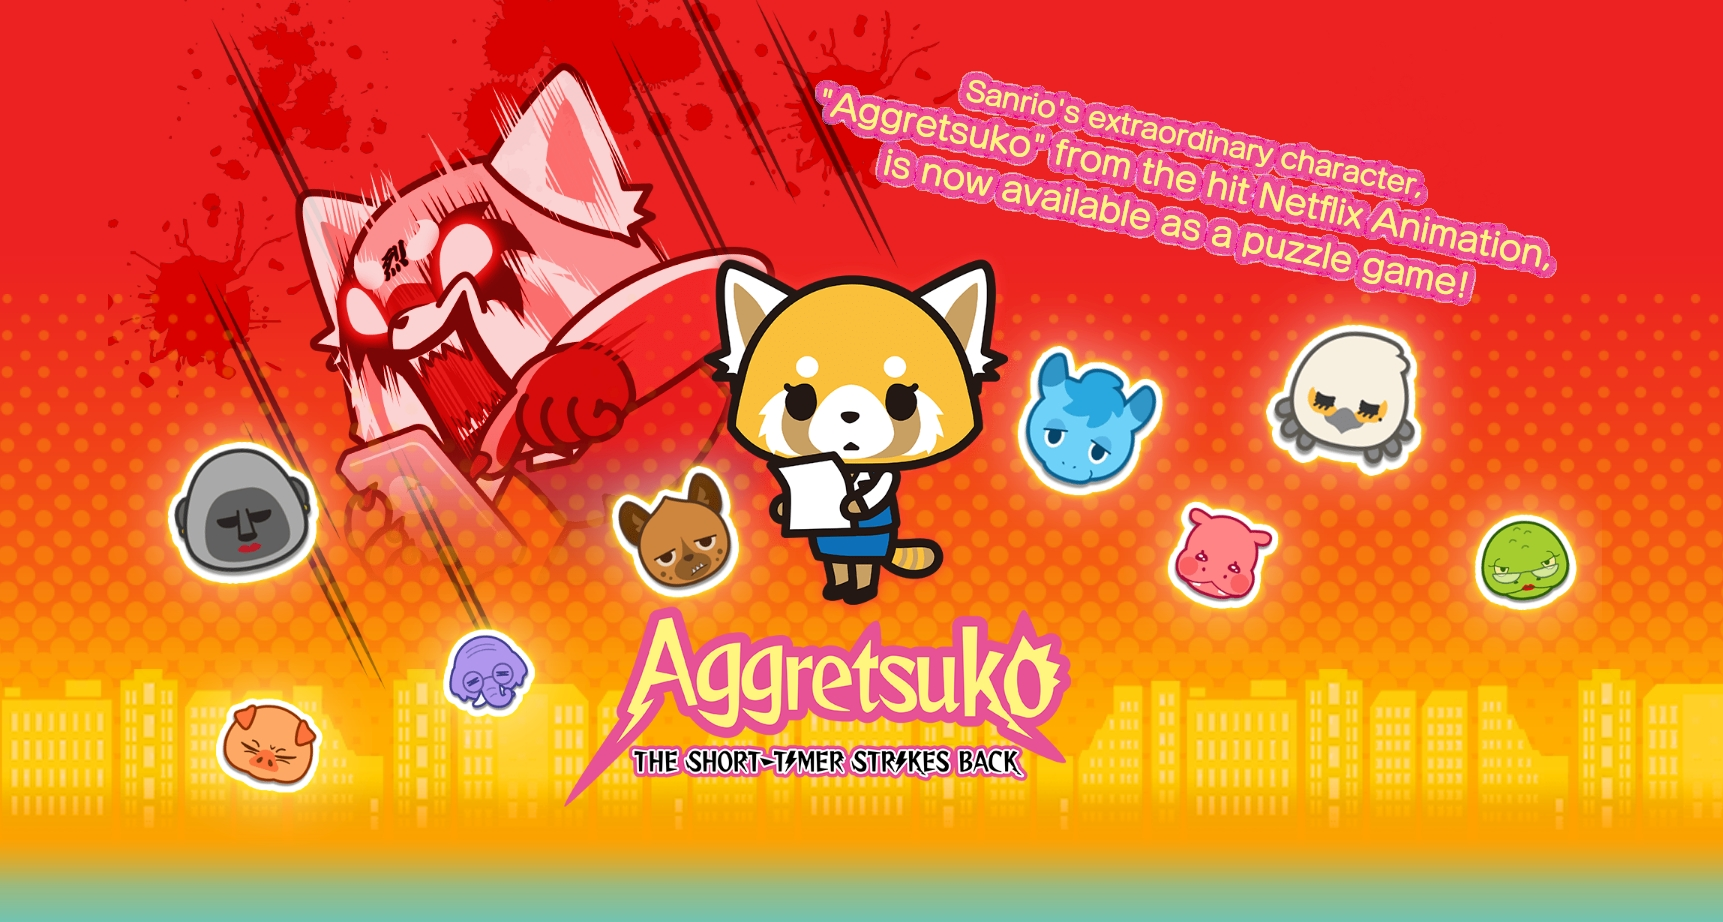 Aggretsuko: The Short-Timer Strikes Back Puzzle Game Launches On July 28 For Mobile